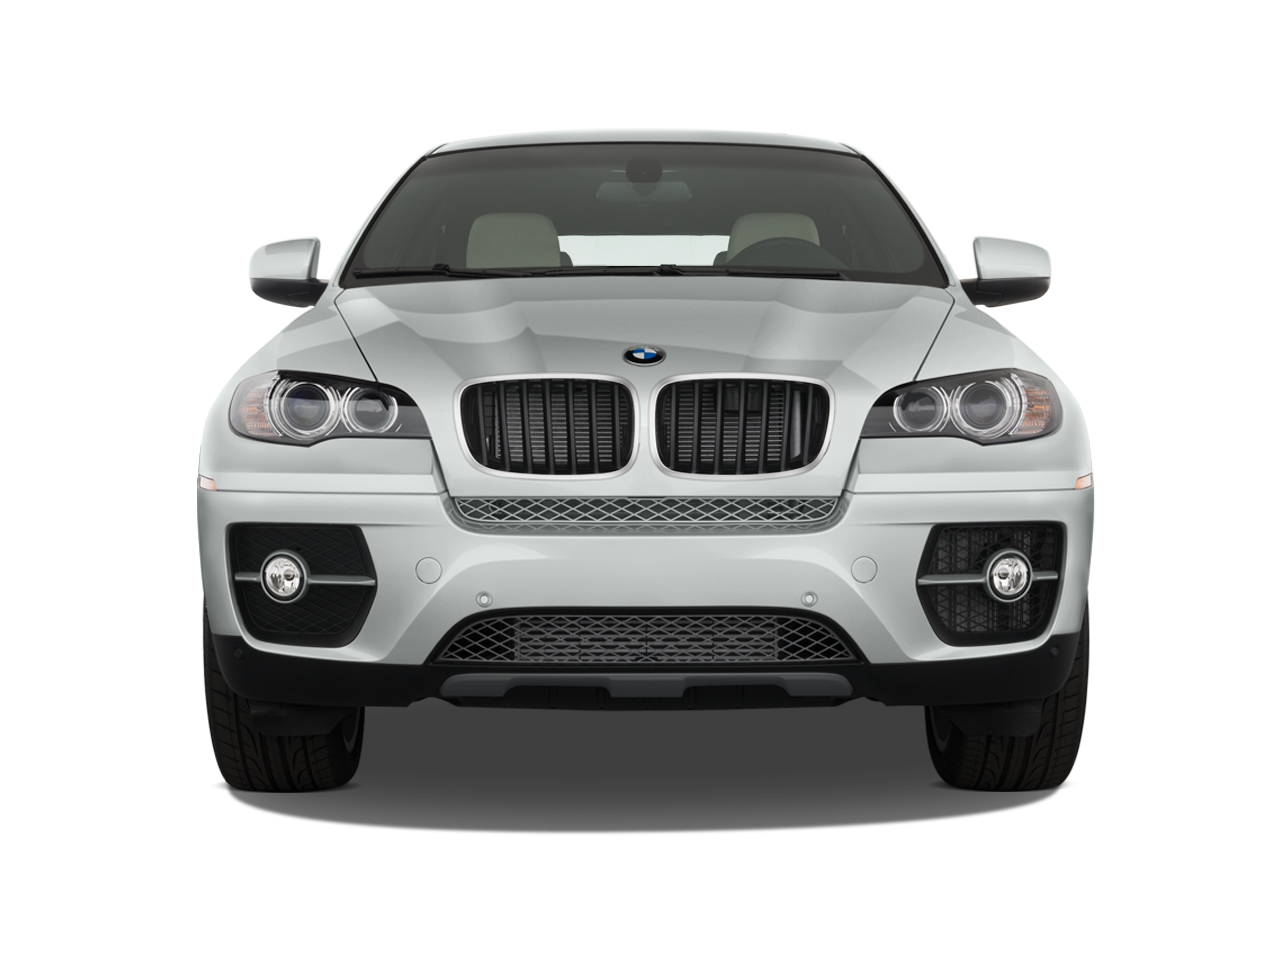 2009 bmw x6 xdrive35i bmw crossover coupe review. Black Bedroom Furniture Sets. Home Design Ideas